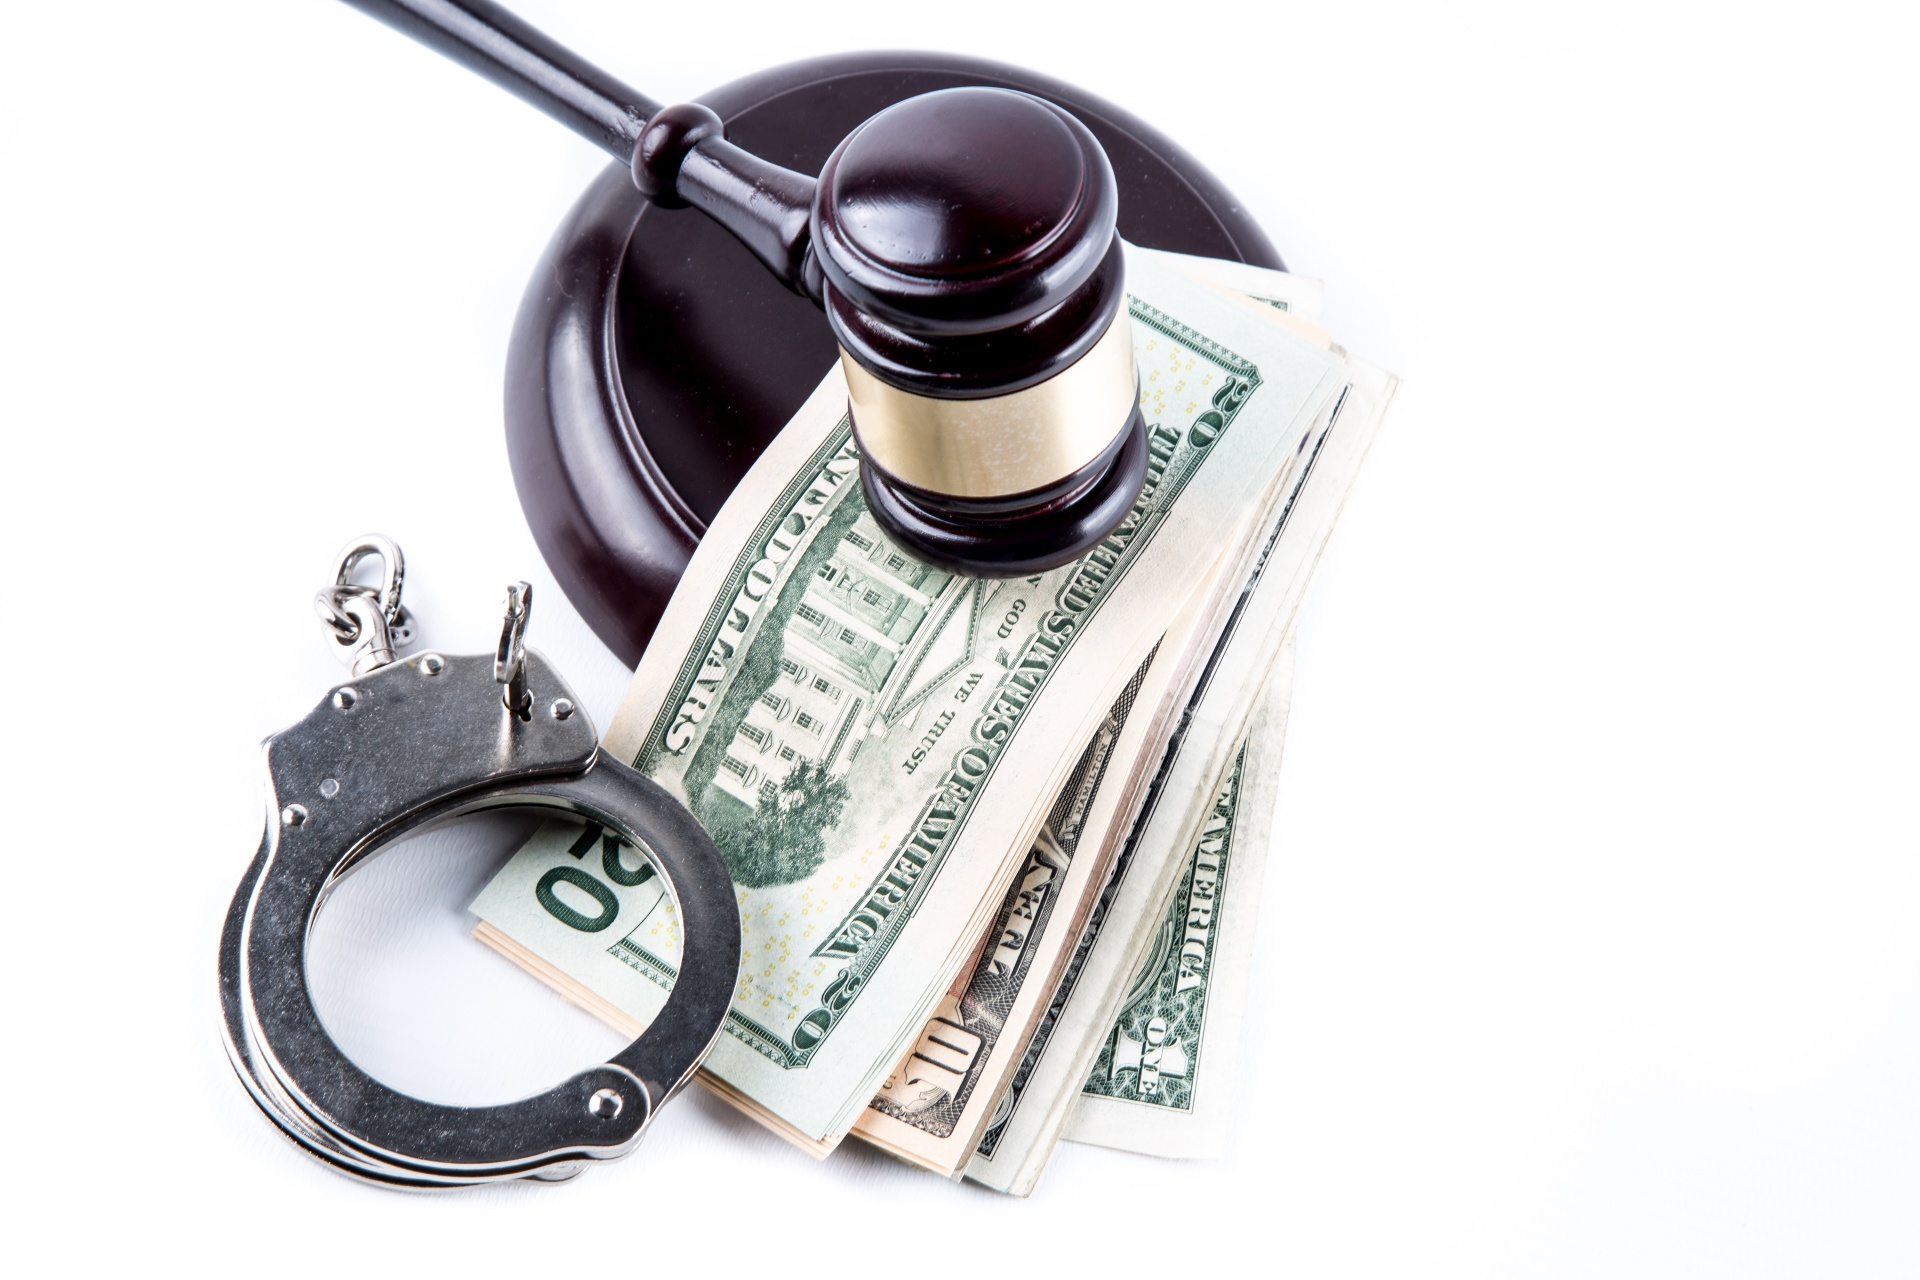 judge-gavel-handcuffs-and-money-1461289438fb3